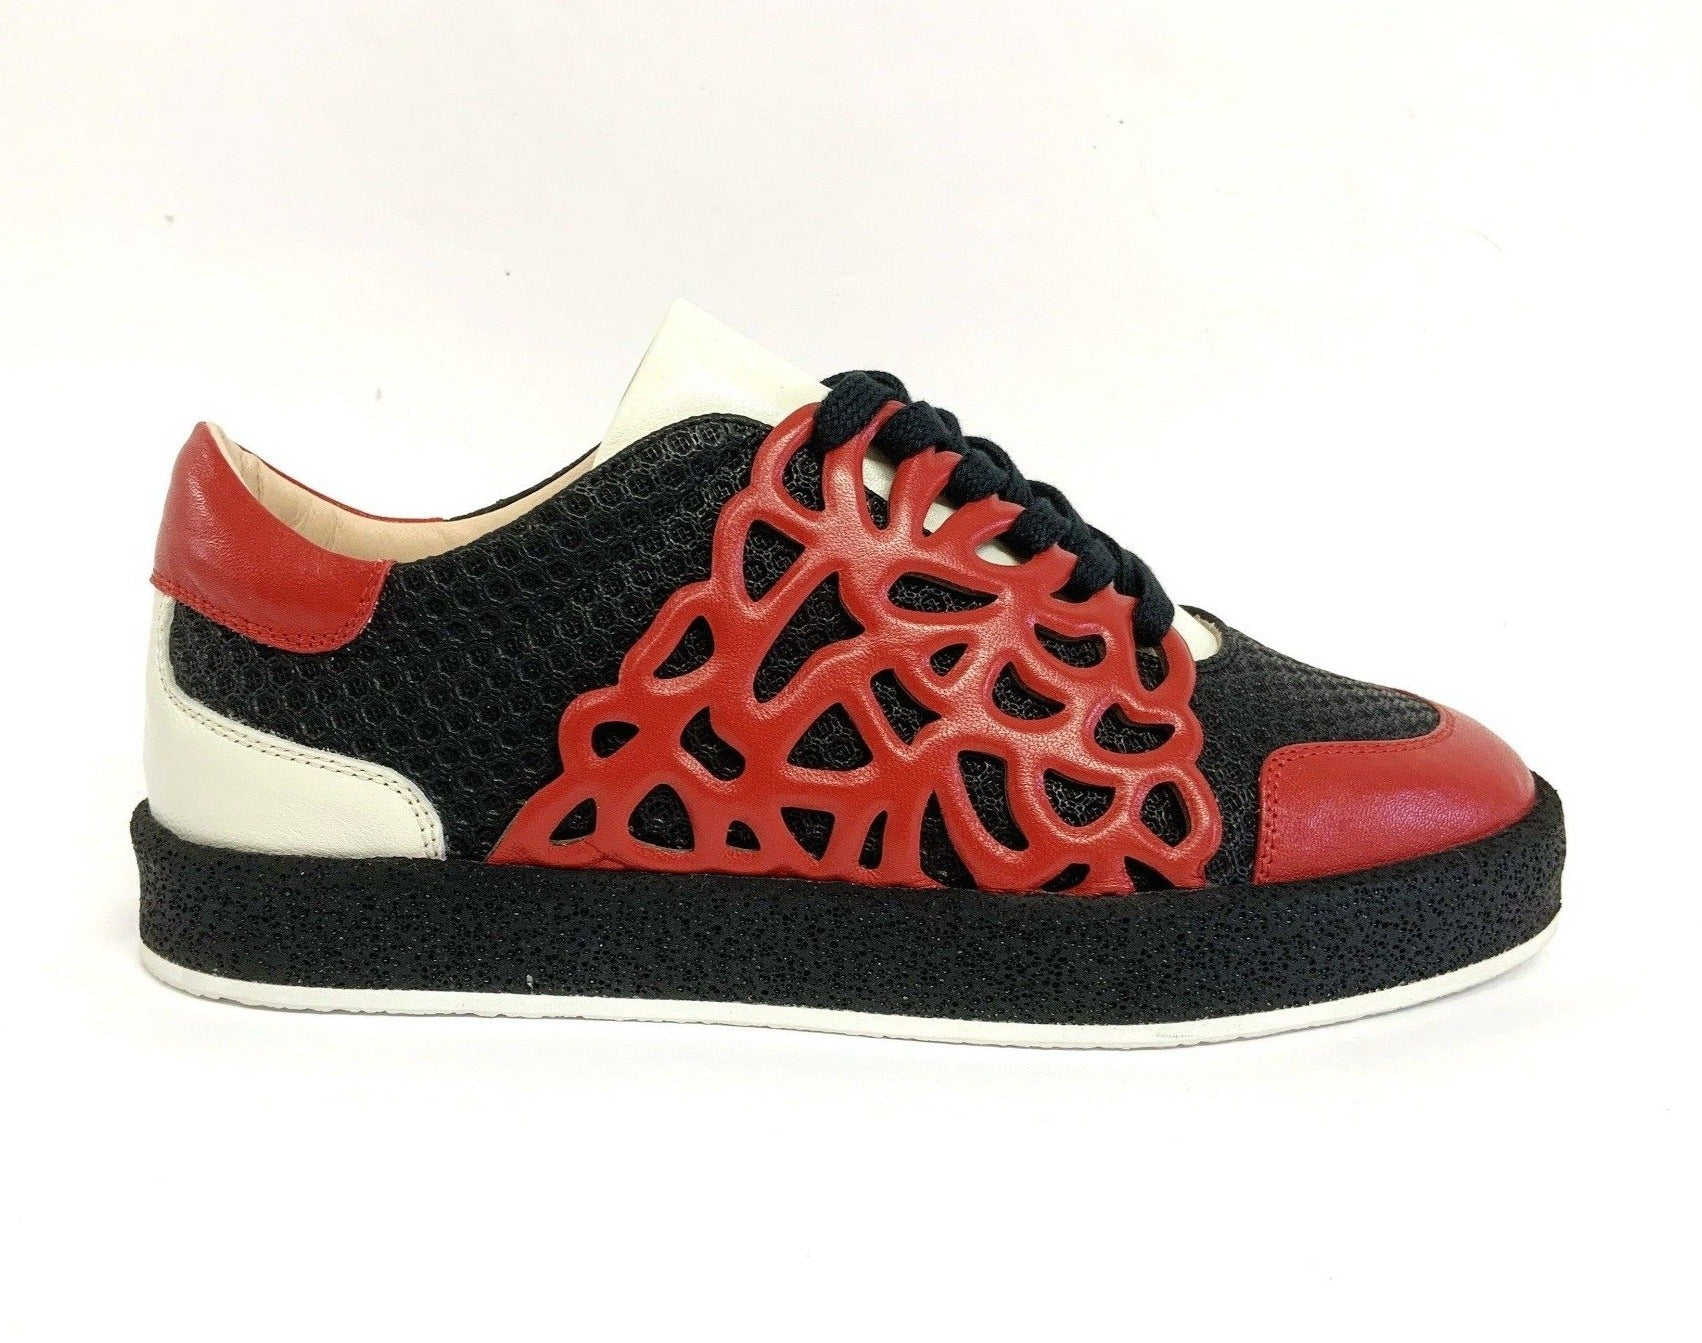 BAROQUE - Sneakers rosso